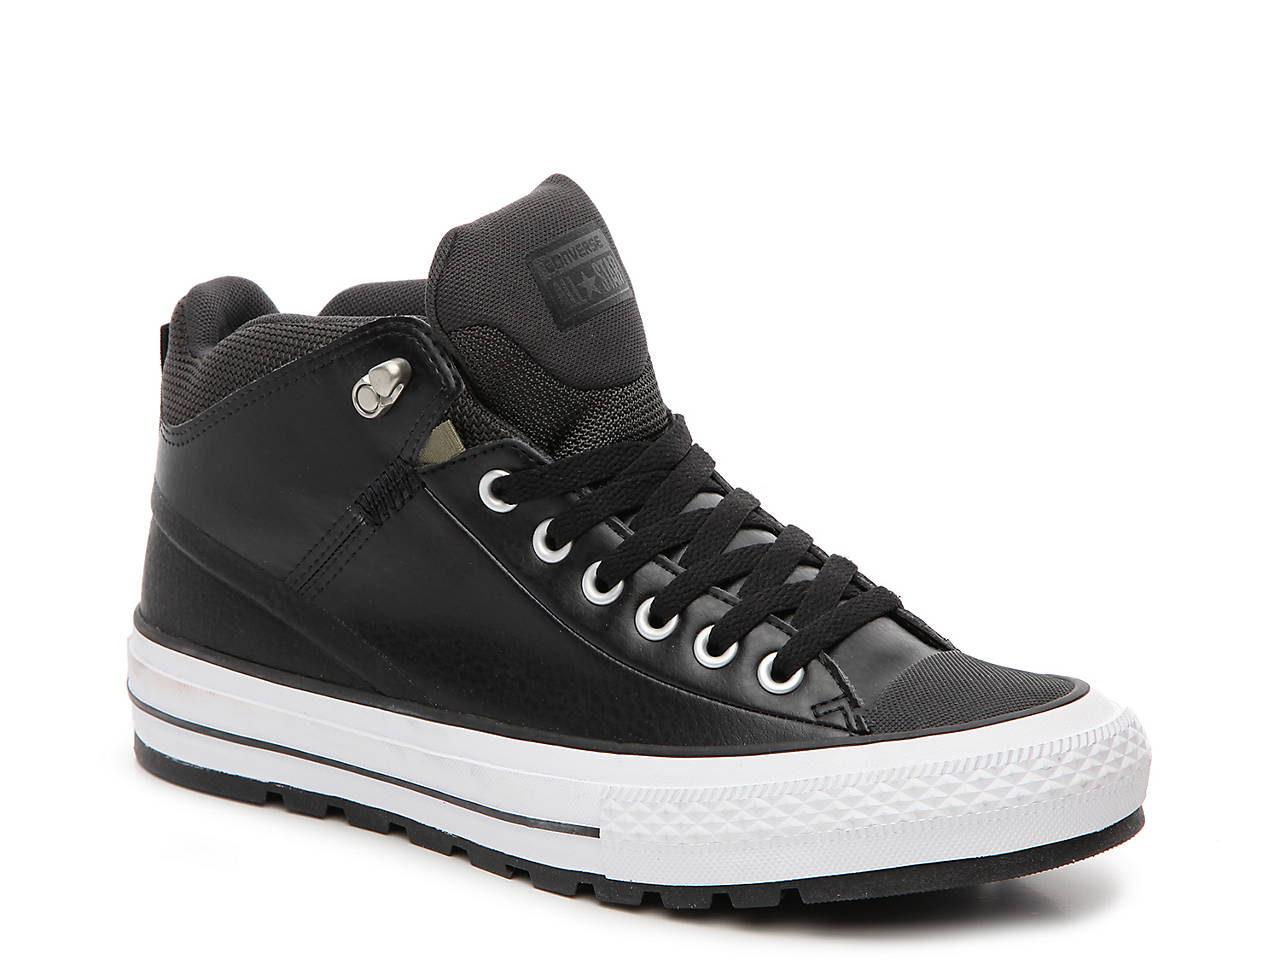 56775190dc9f Converse Chuck Taylor All Star Hi Street High-Top Sneaker Boot ...